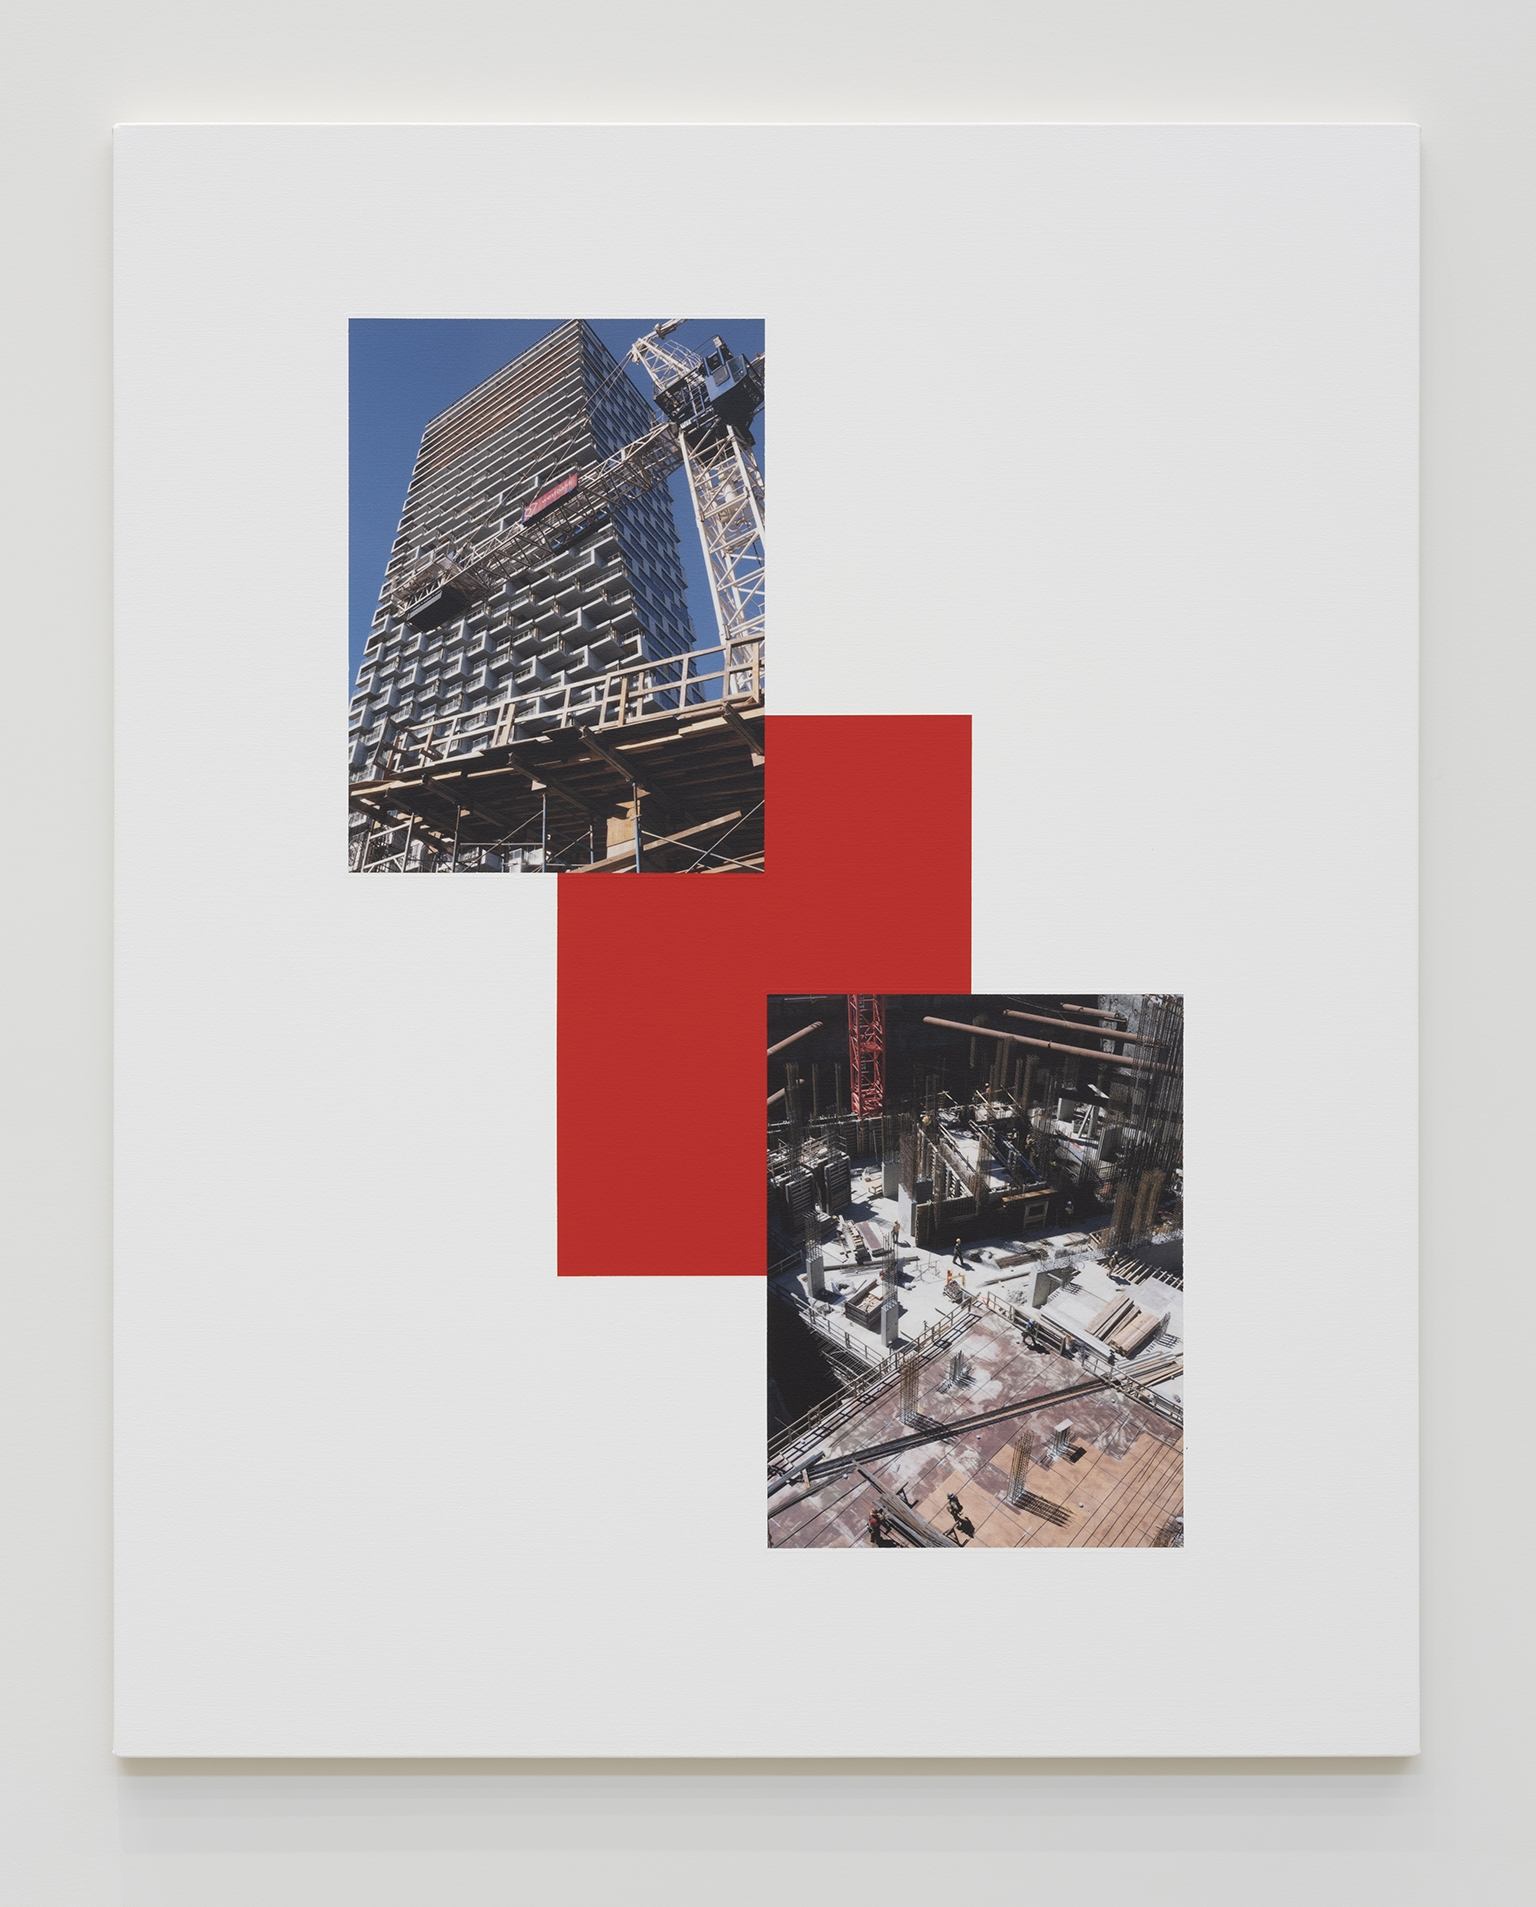 Ian Wallace, Base/Superstructure, (Vancouver House), 2019, photolaminate with acrylic on canvas, 60 x 48 in. (152 x 122 cm) by